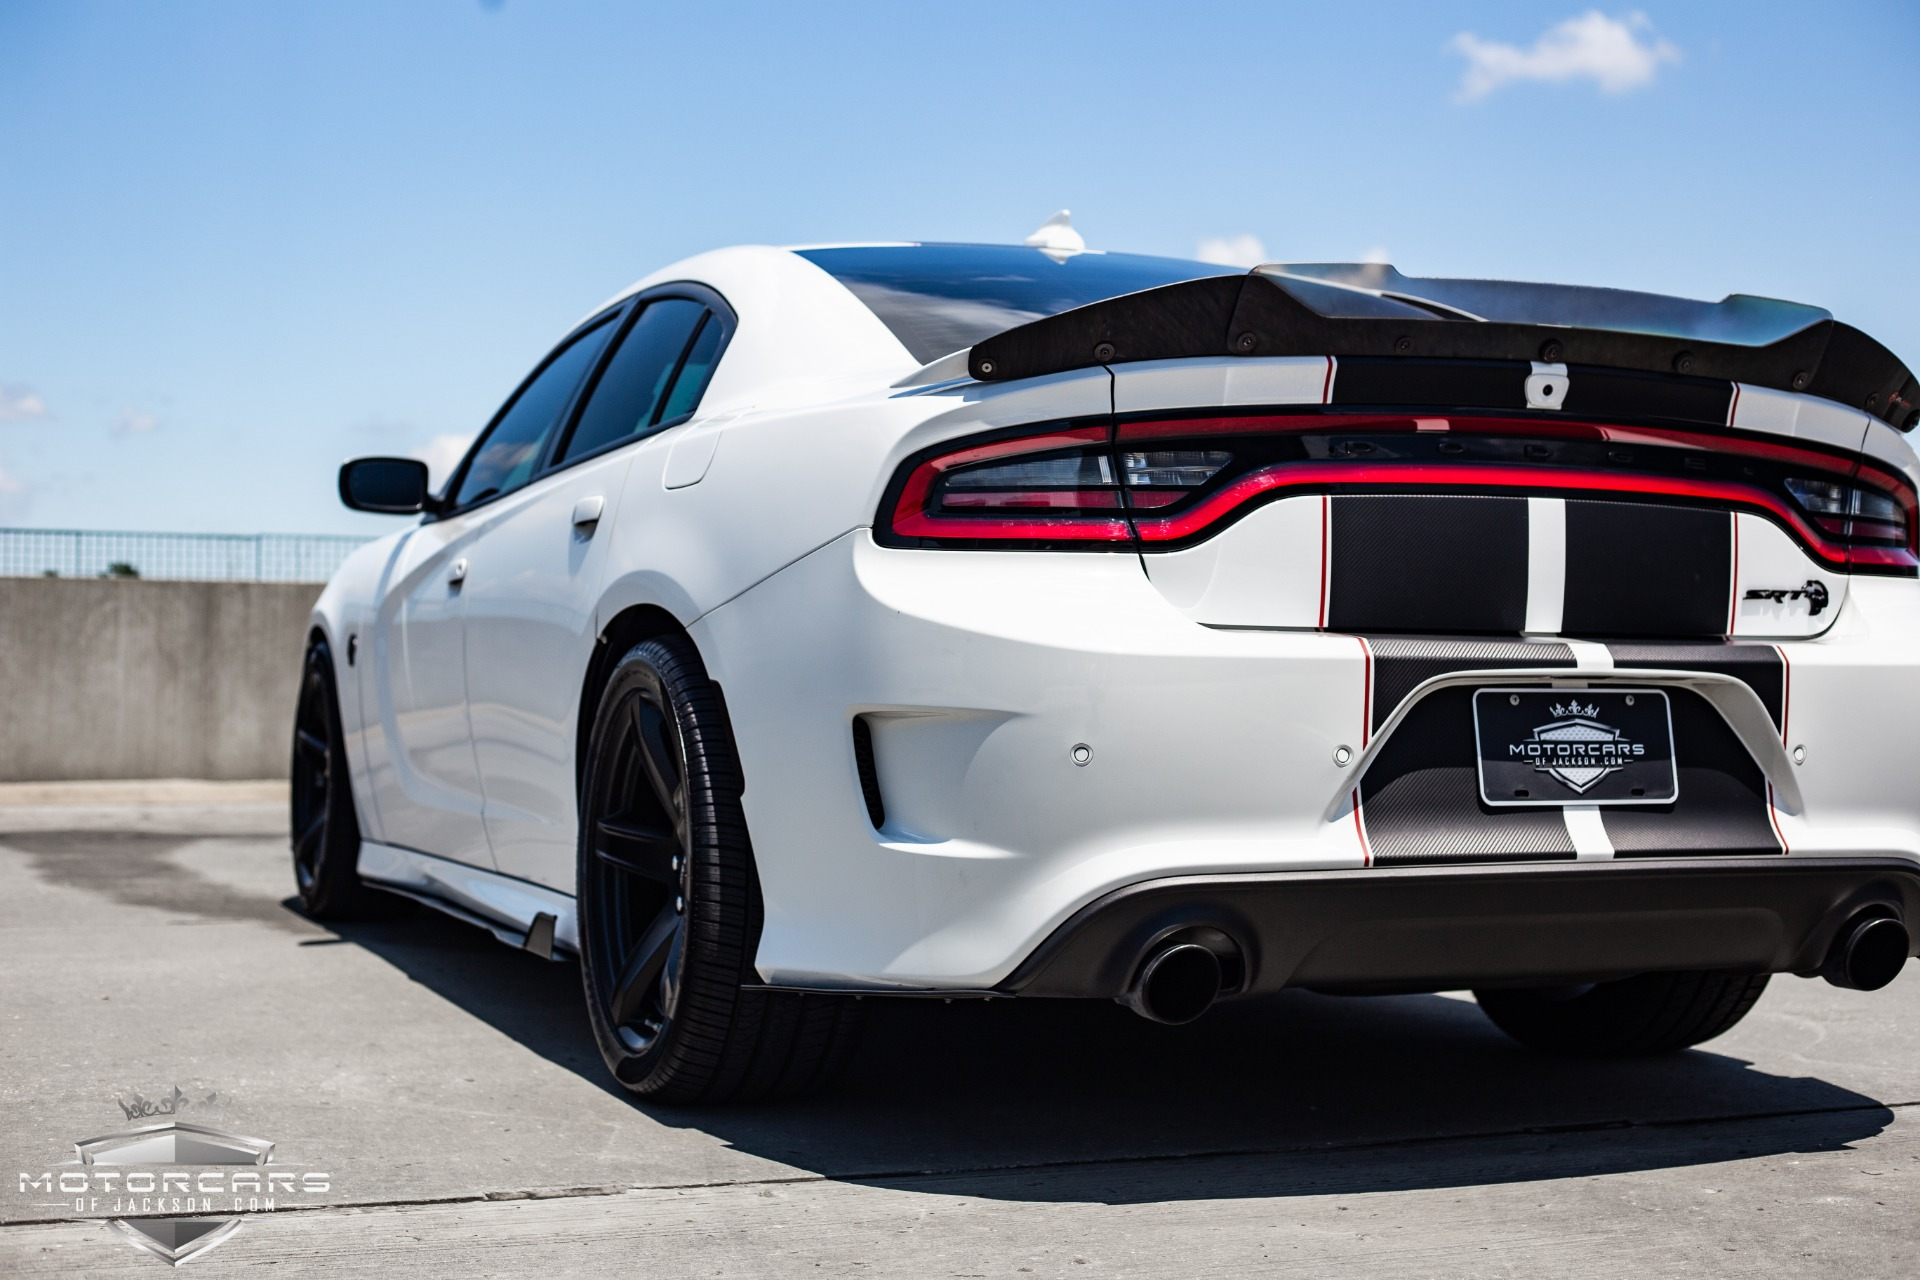 Used-2017-Dodge-Charger-SRT-Hellcat-for-sale-Jackson-MS